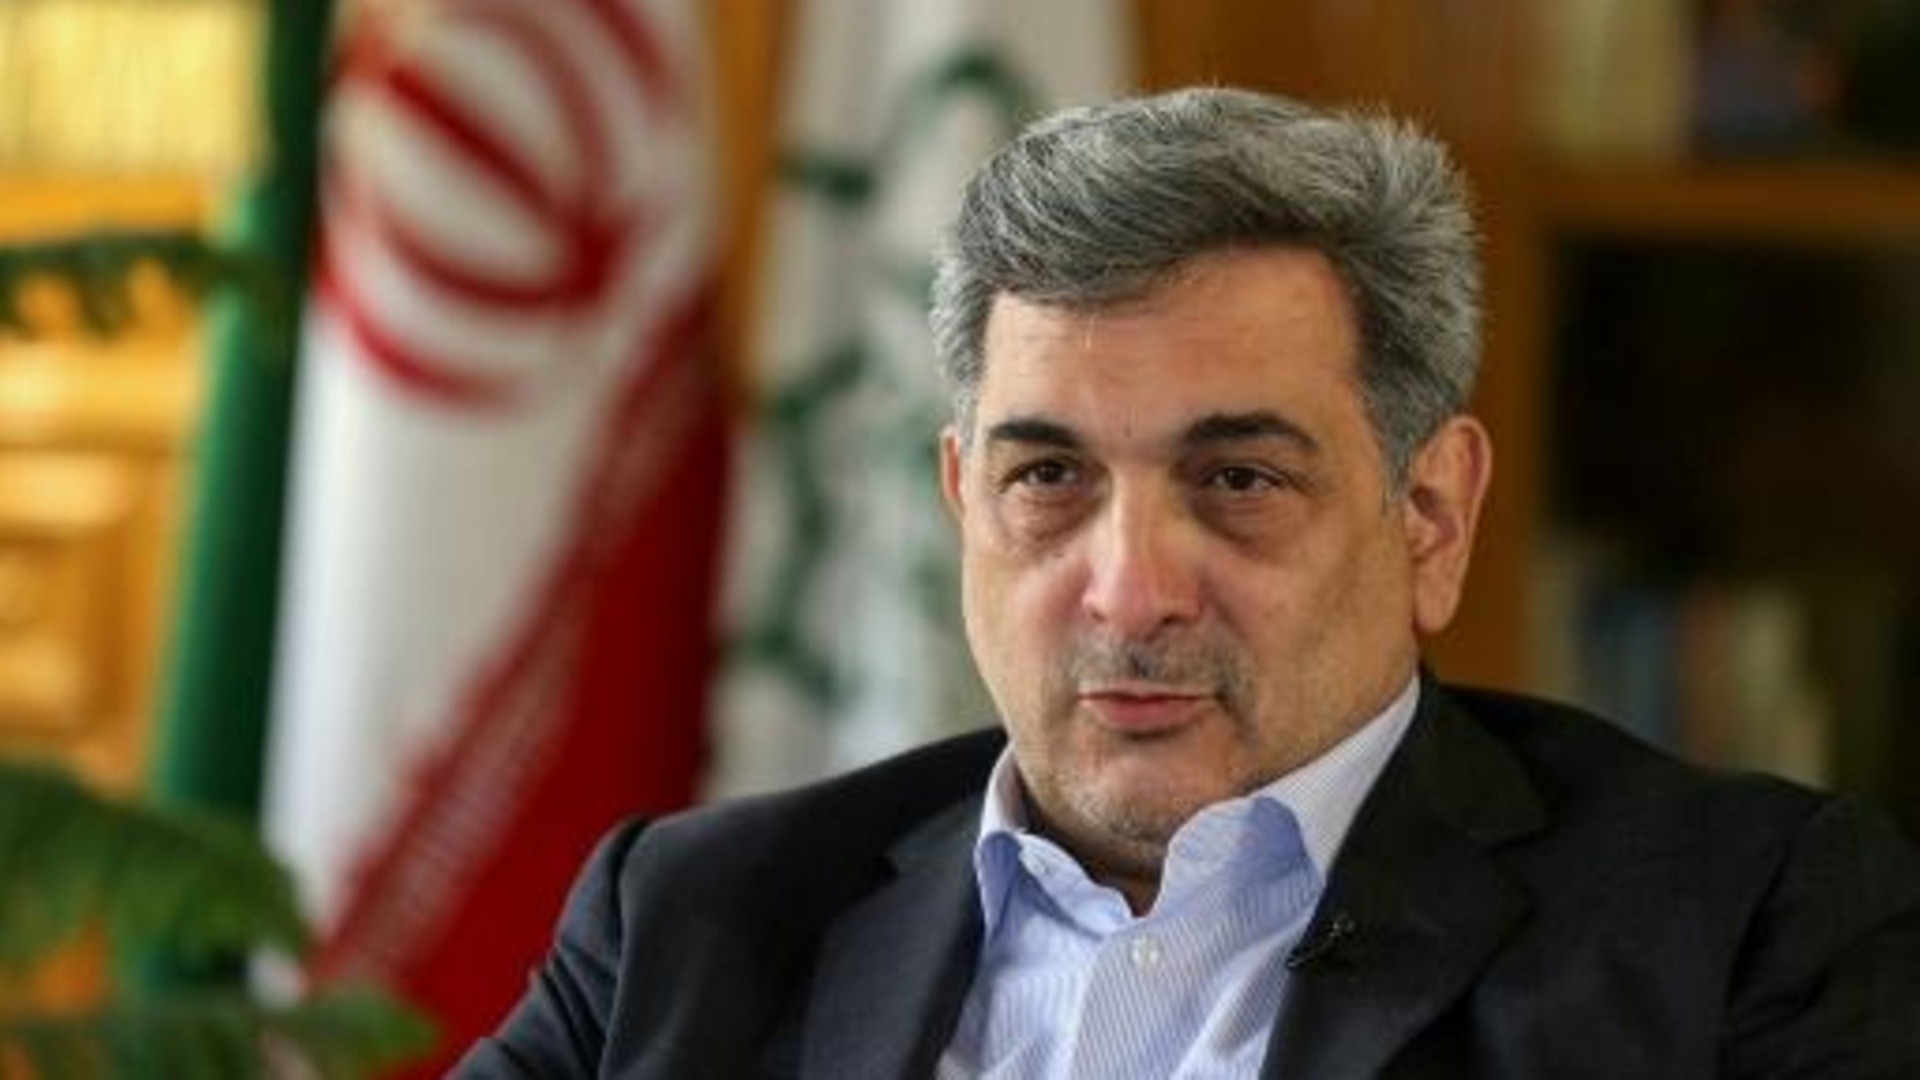 Tehran mayor sees 'threat' in Iranians' dissatisfaction